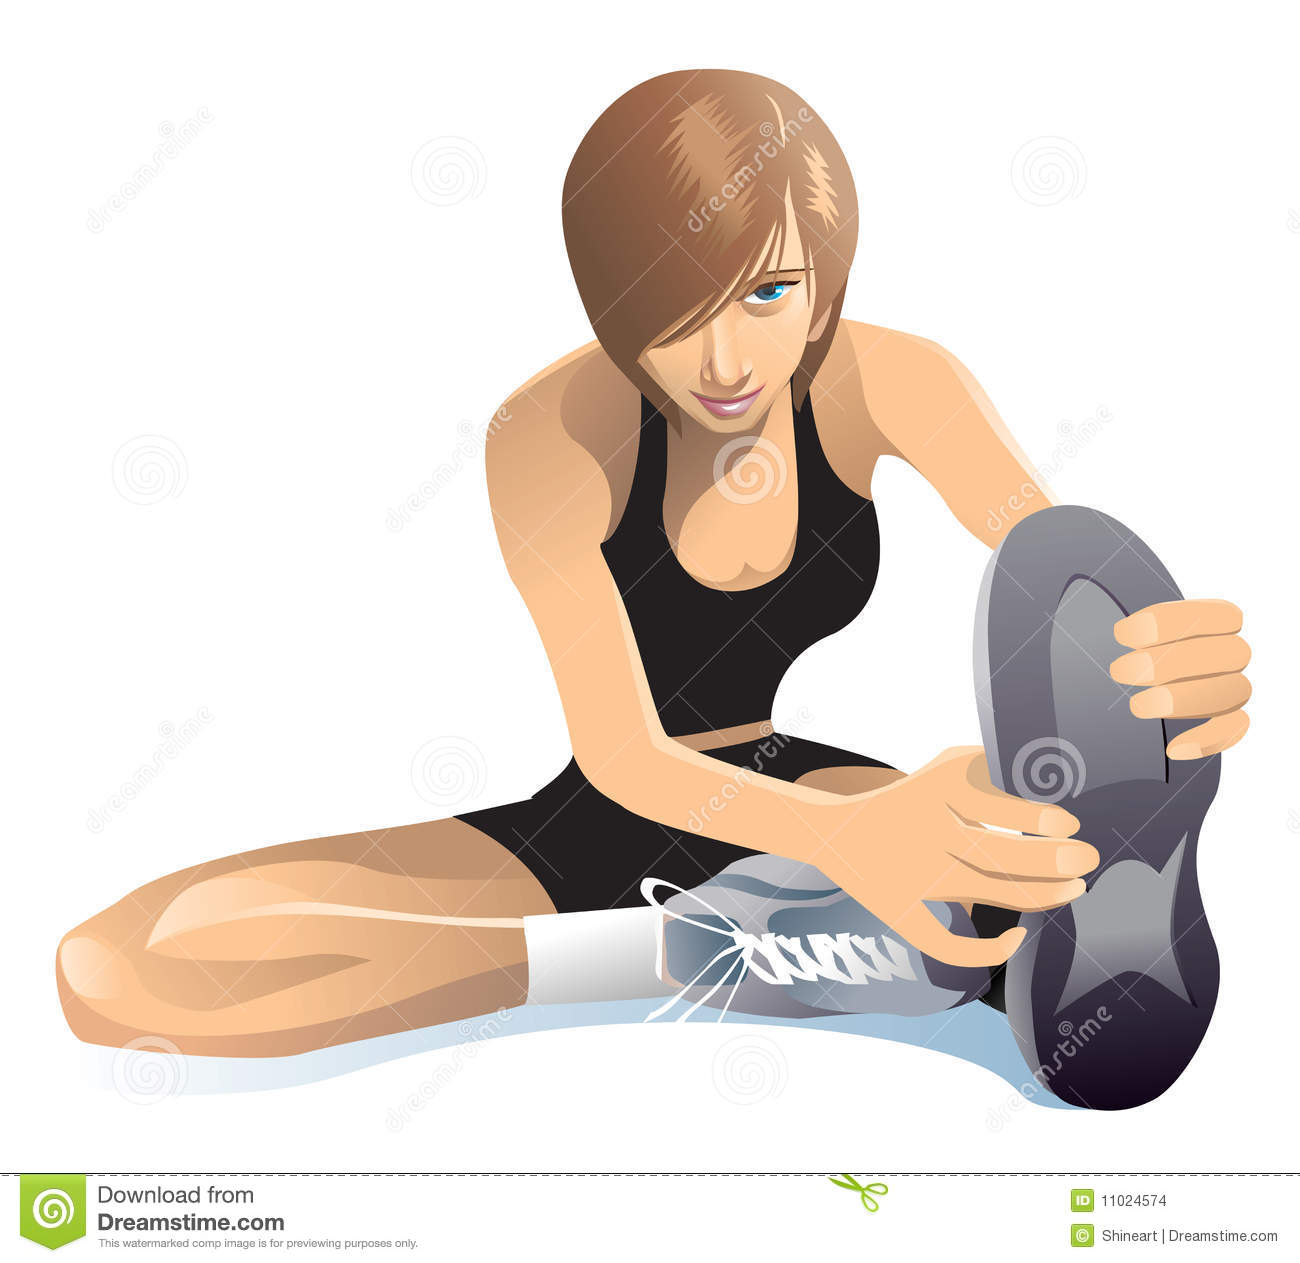 Stretching Exercises Stock Images - Image: 11024574